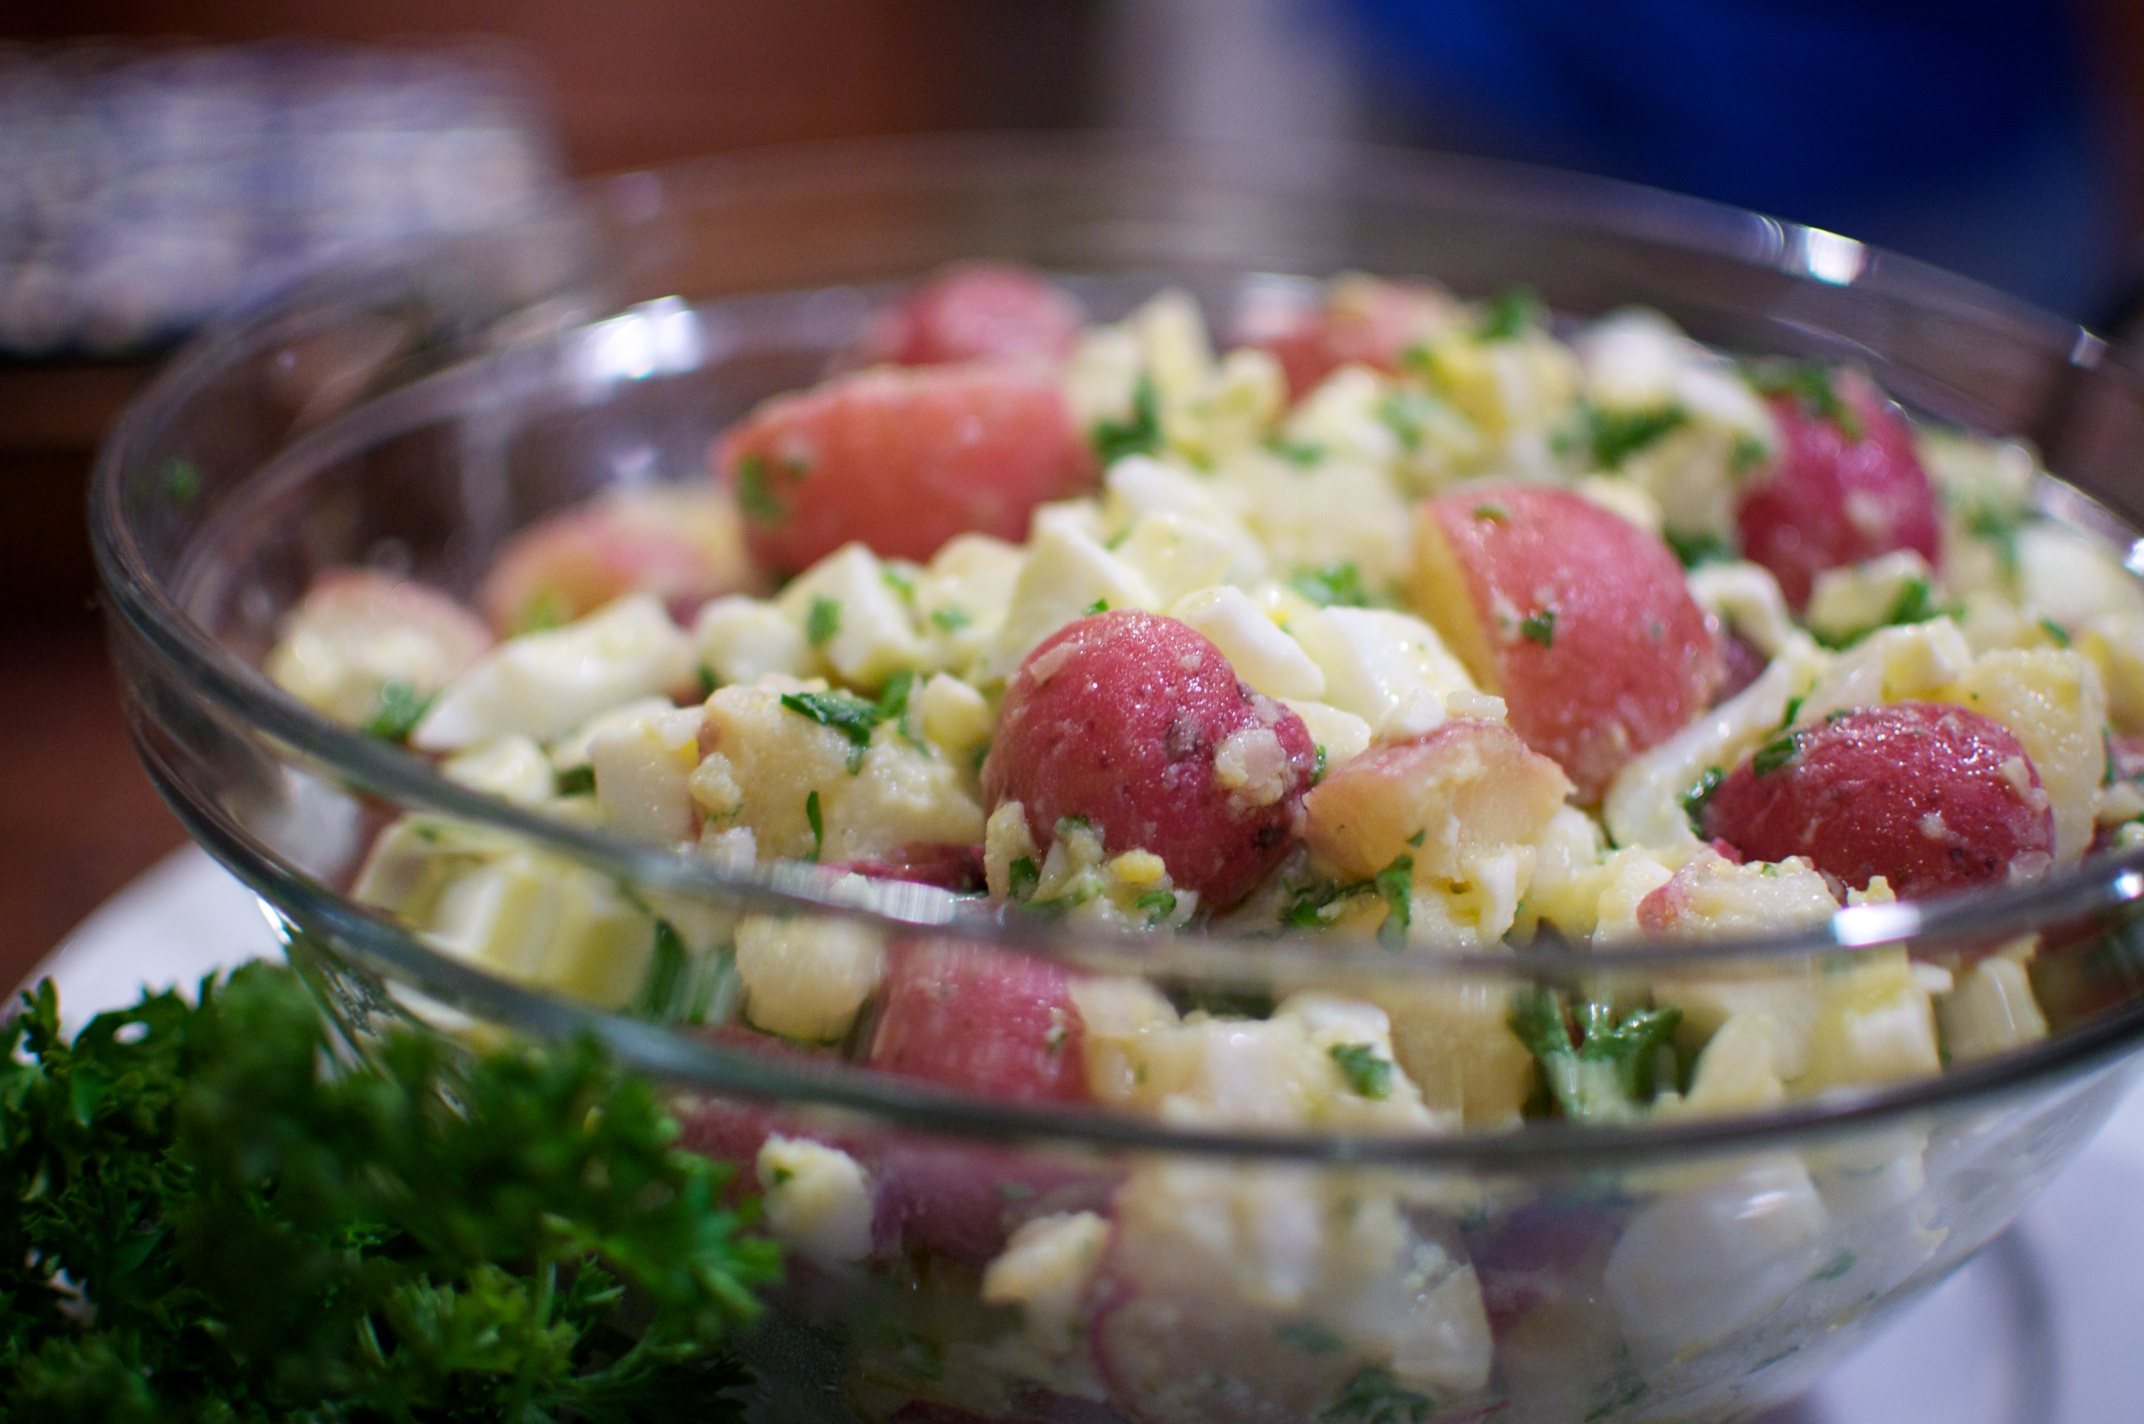 Oma's Potato Salad